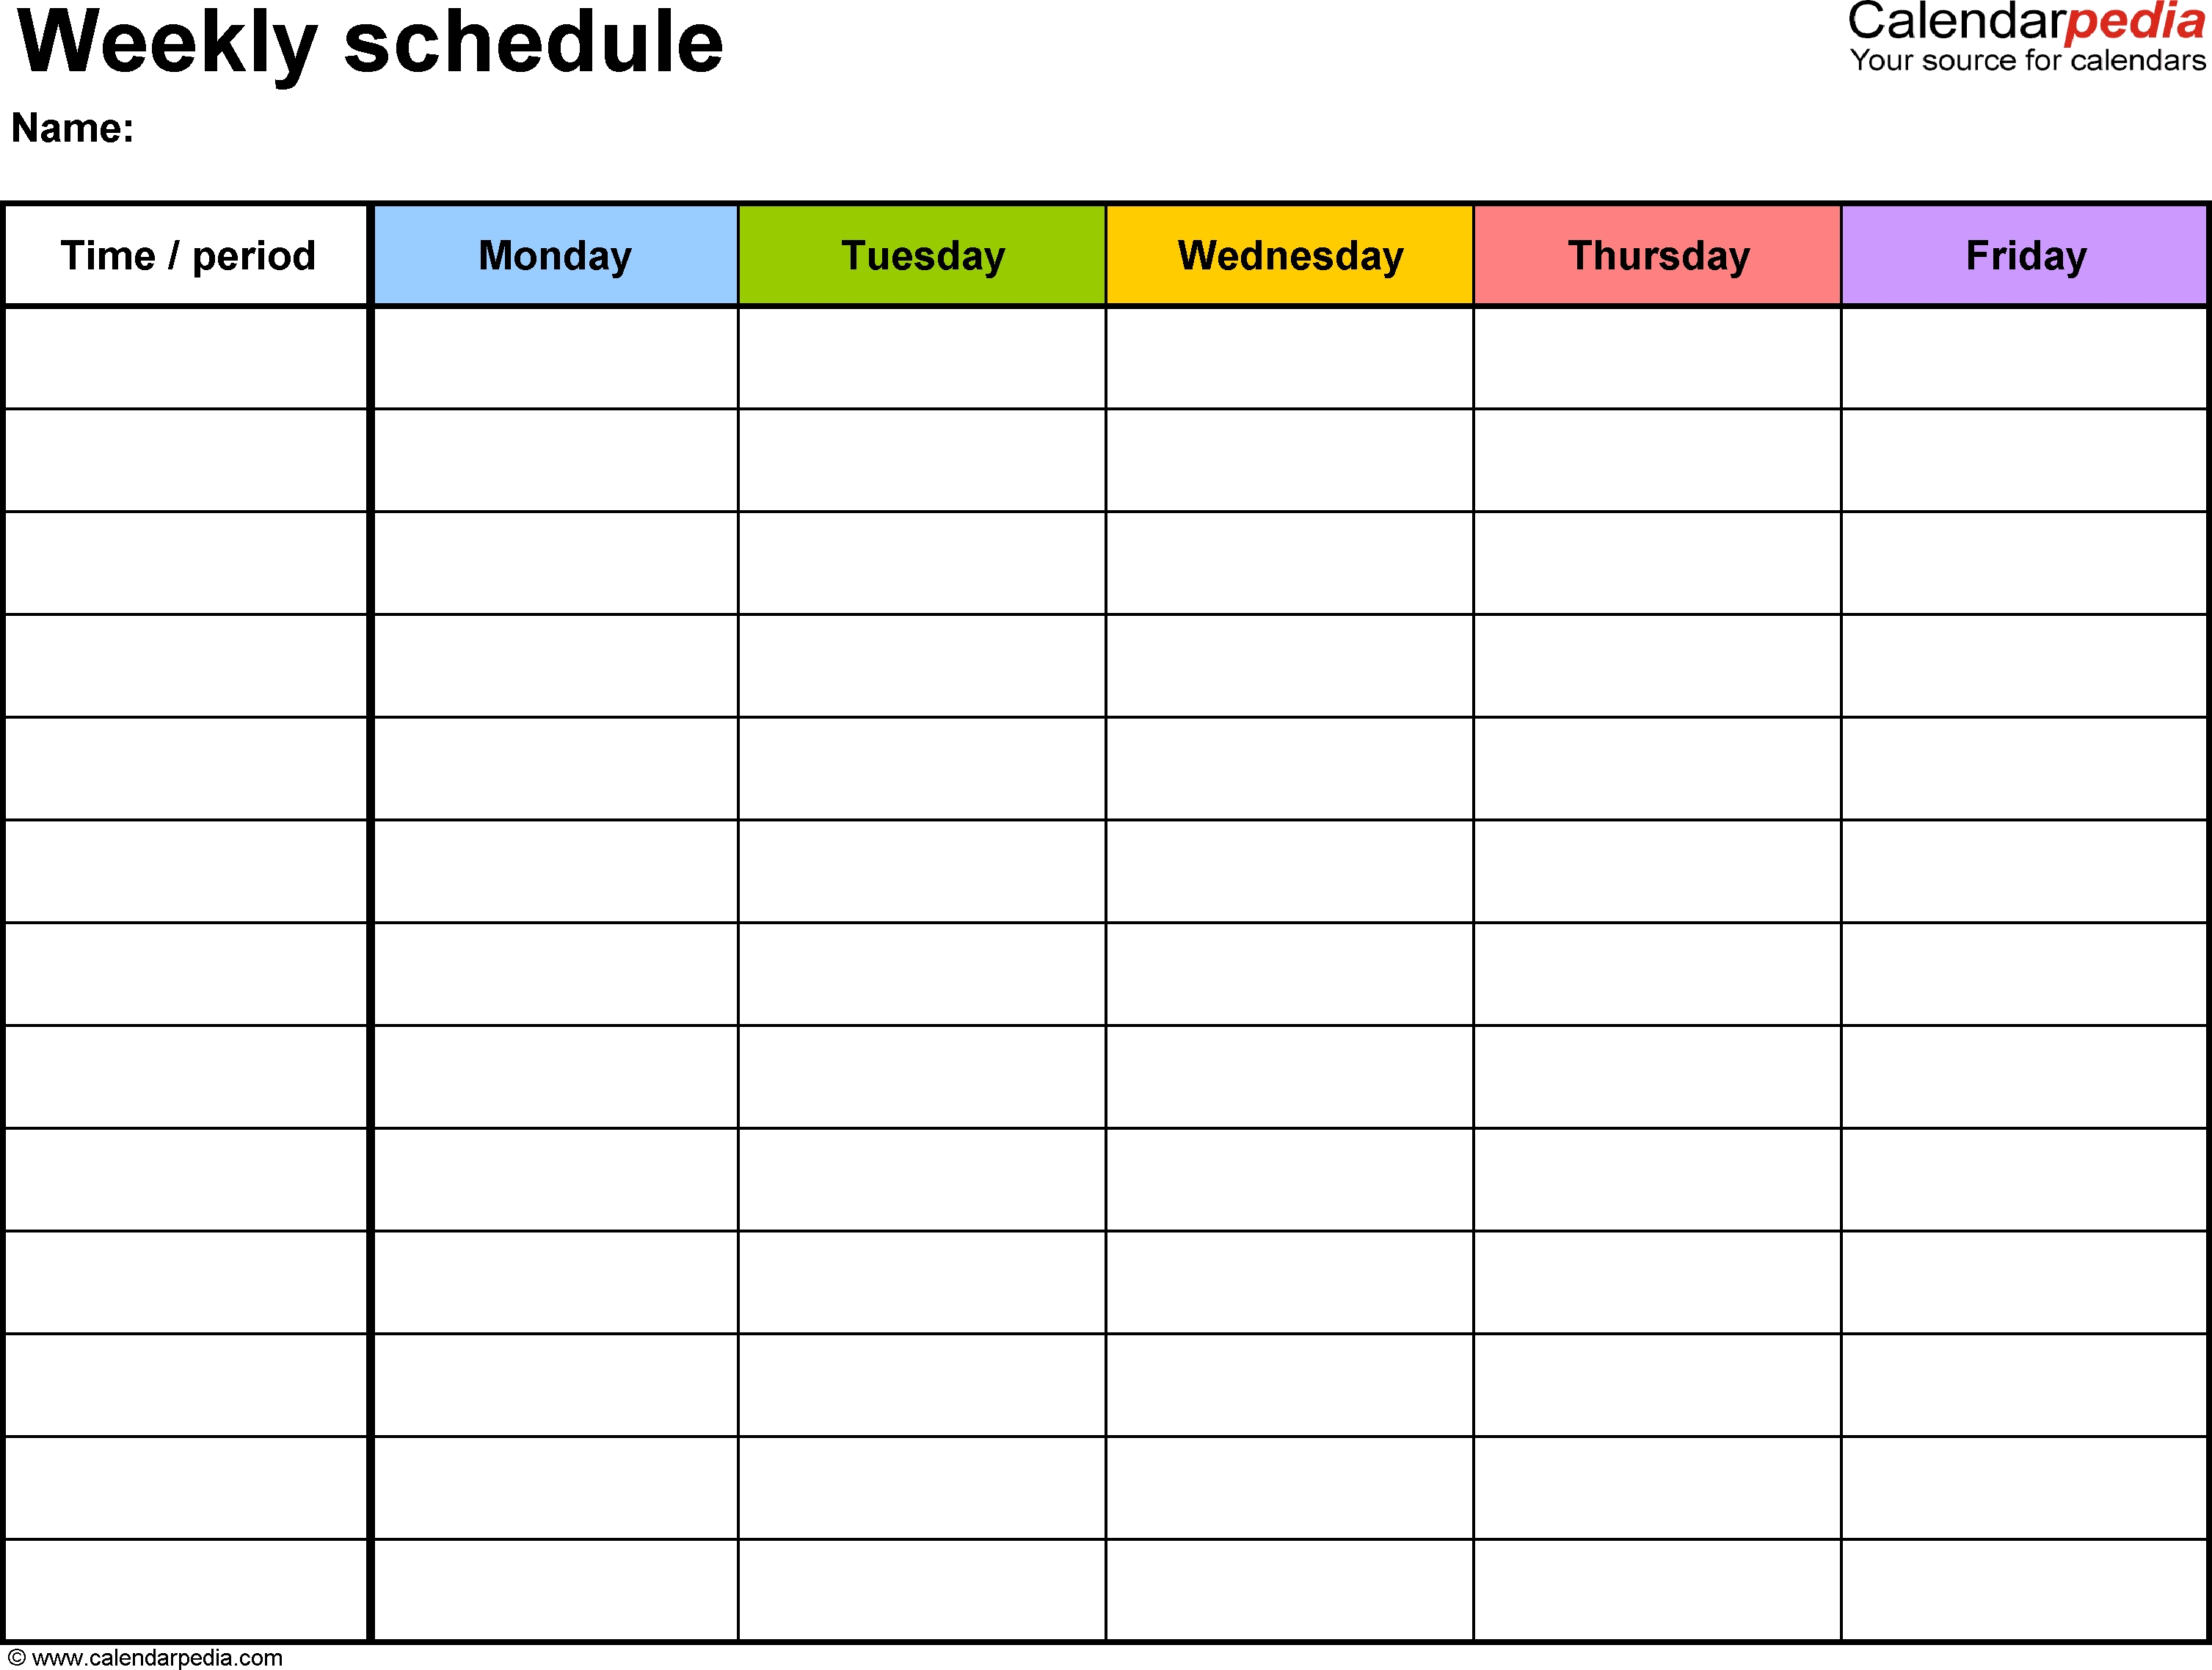 Free Weekly Schedule Templates For Word - 18 Templates-Monday-Friday Blank Weekly Schedule